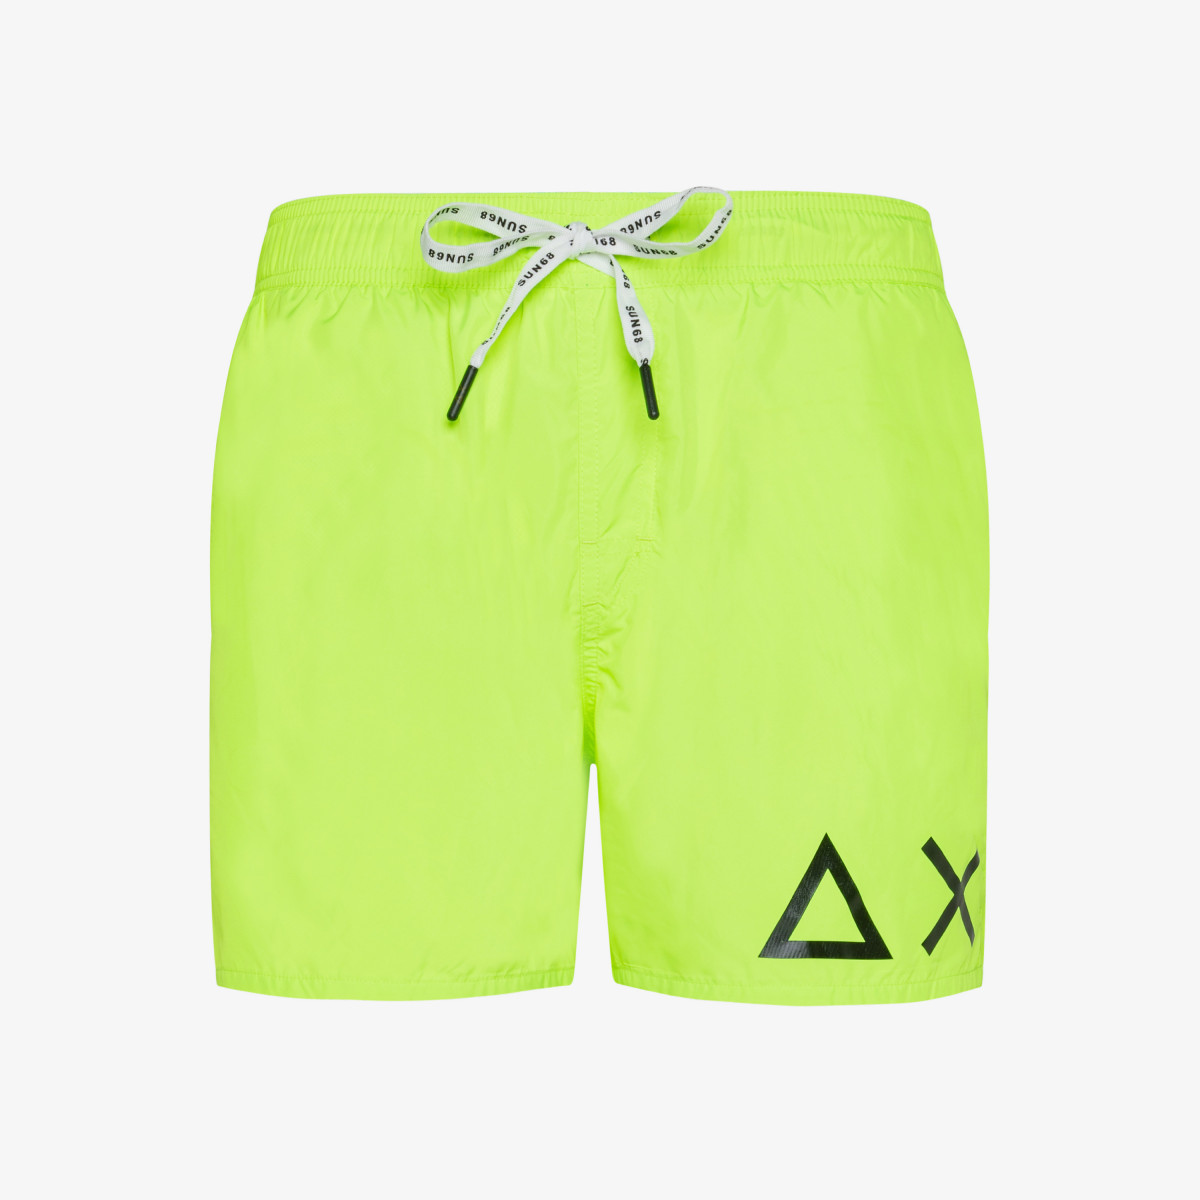 SWIM PANT SOLID BIG LOGO GIALLO FLUO